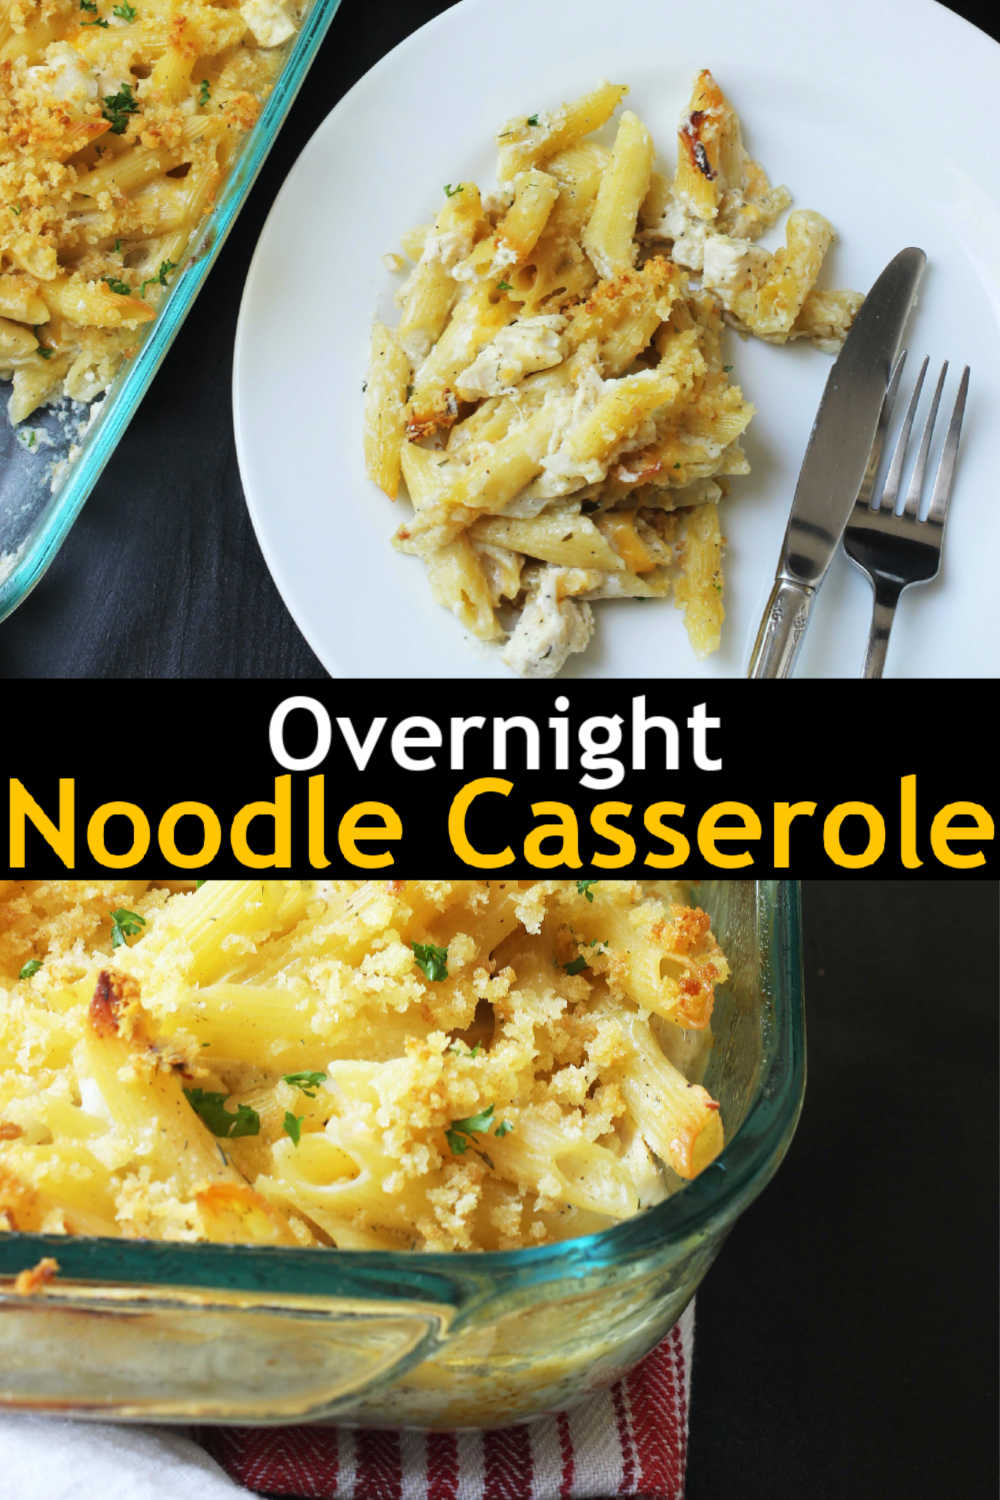 A plate with chicken noodle casserole and a casserole dish